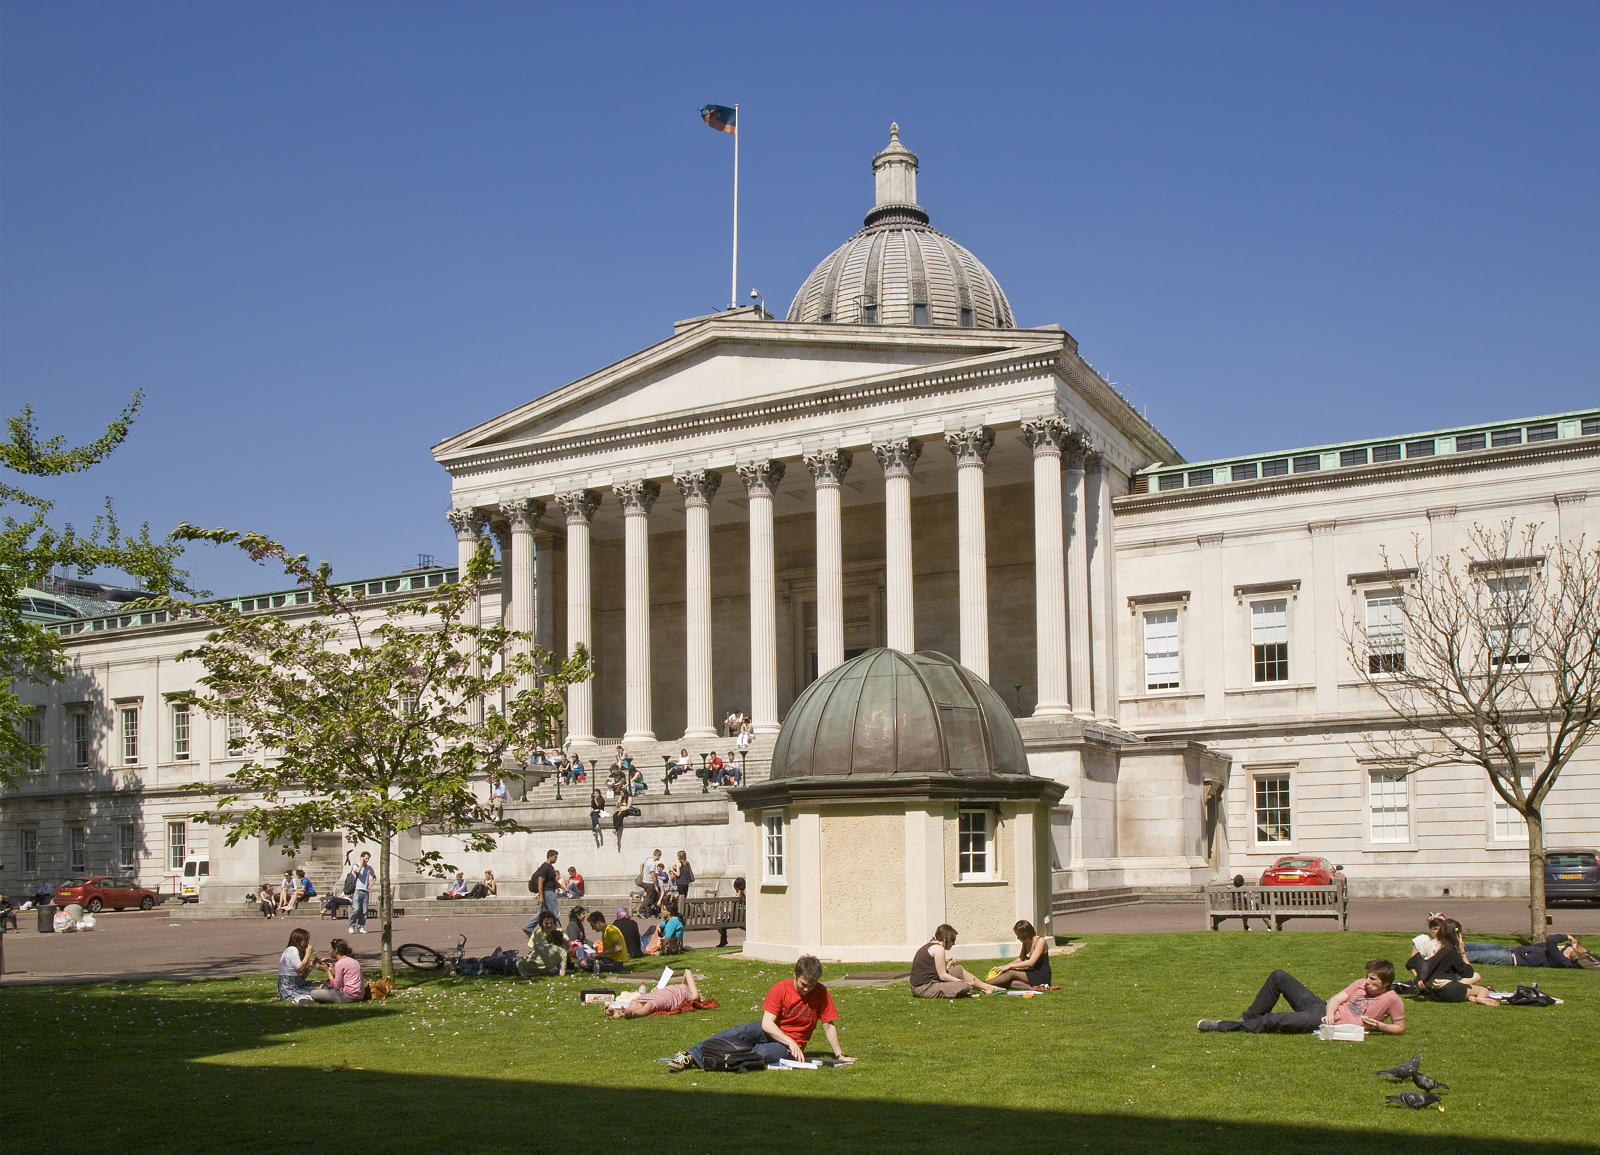 UCL (University College London)